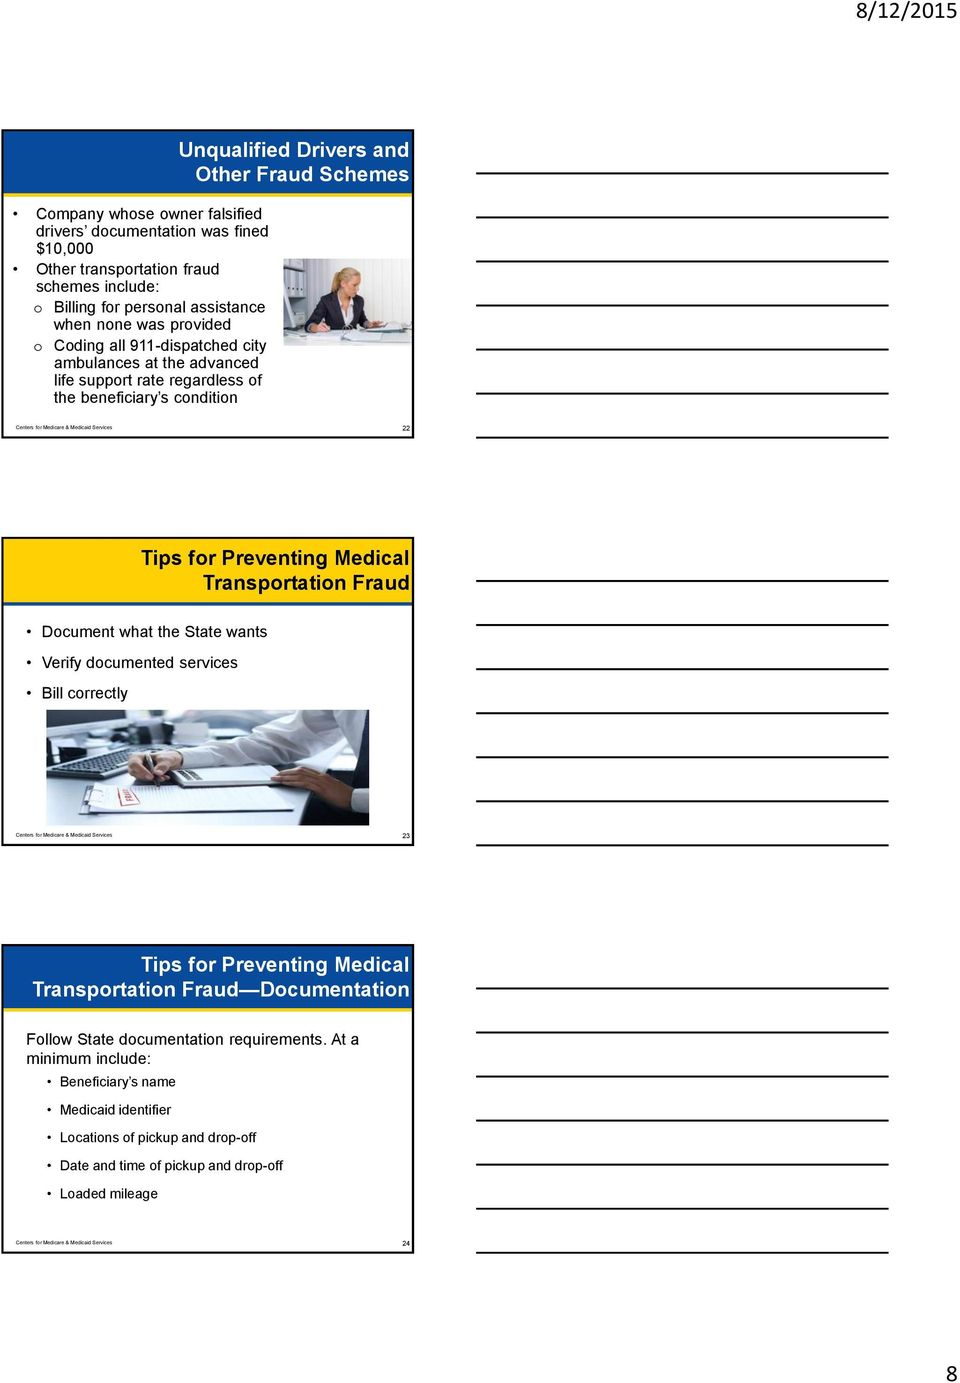 Preventing Medical Transportation Fraud Document what the State wants Verify documented services Bill correctly Centers for Medicare & Medicaid Services 23 Tips for Preventing Medical Transportation